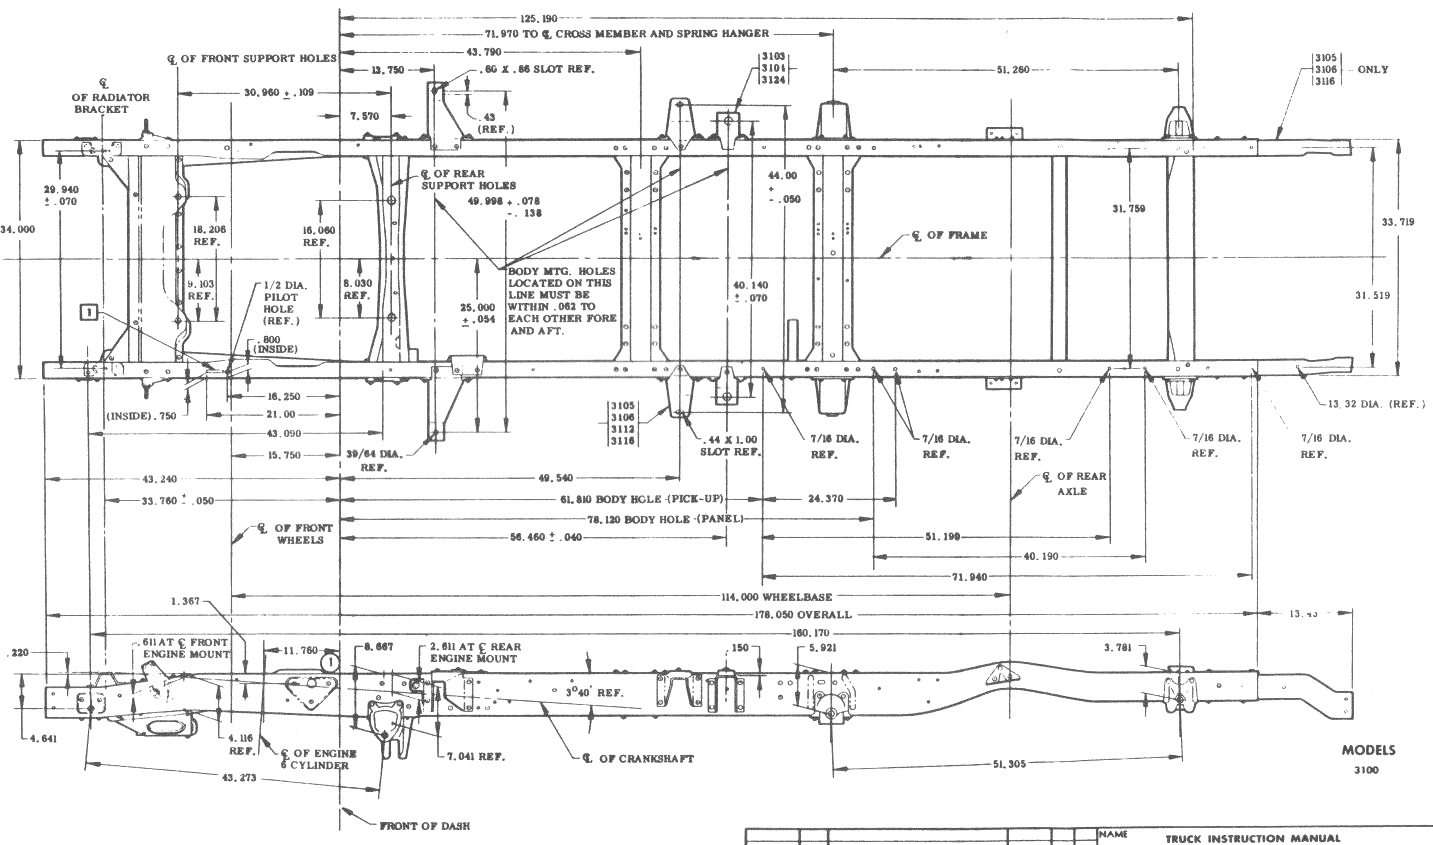 1966 chevy truck frame diagram